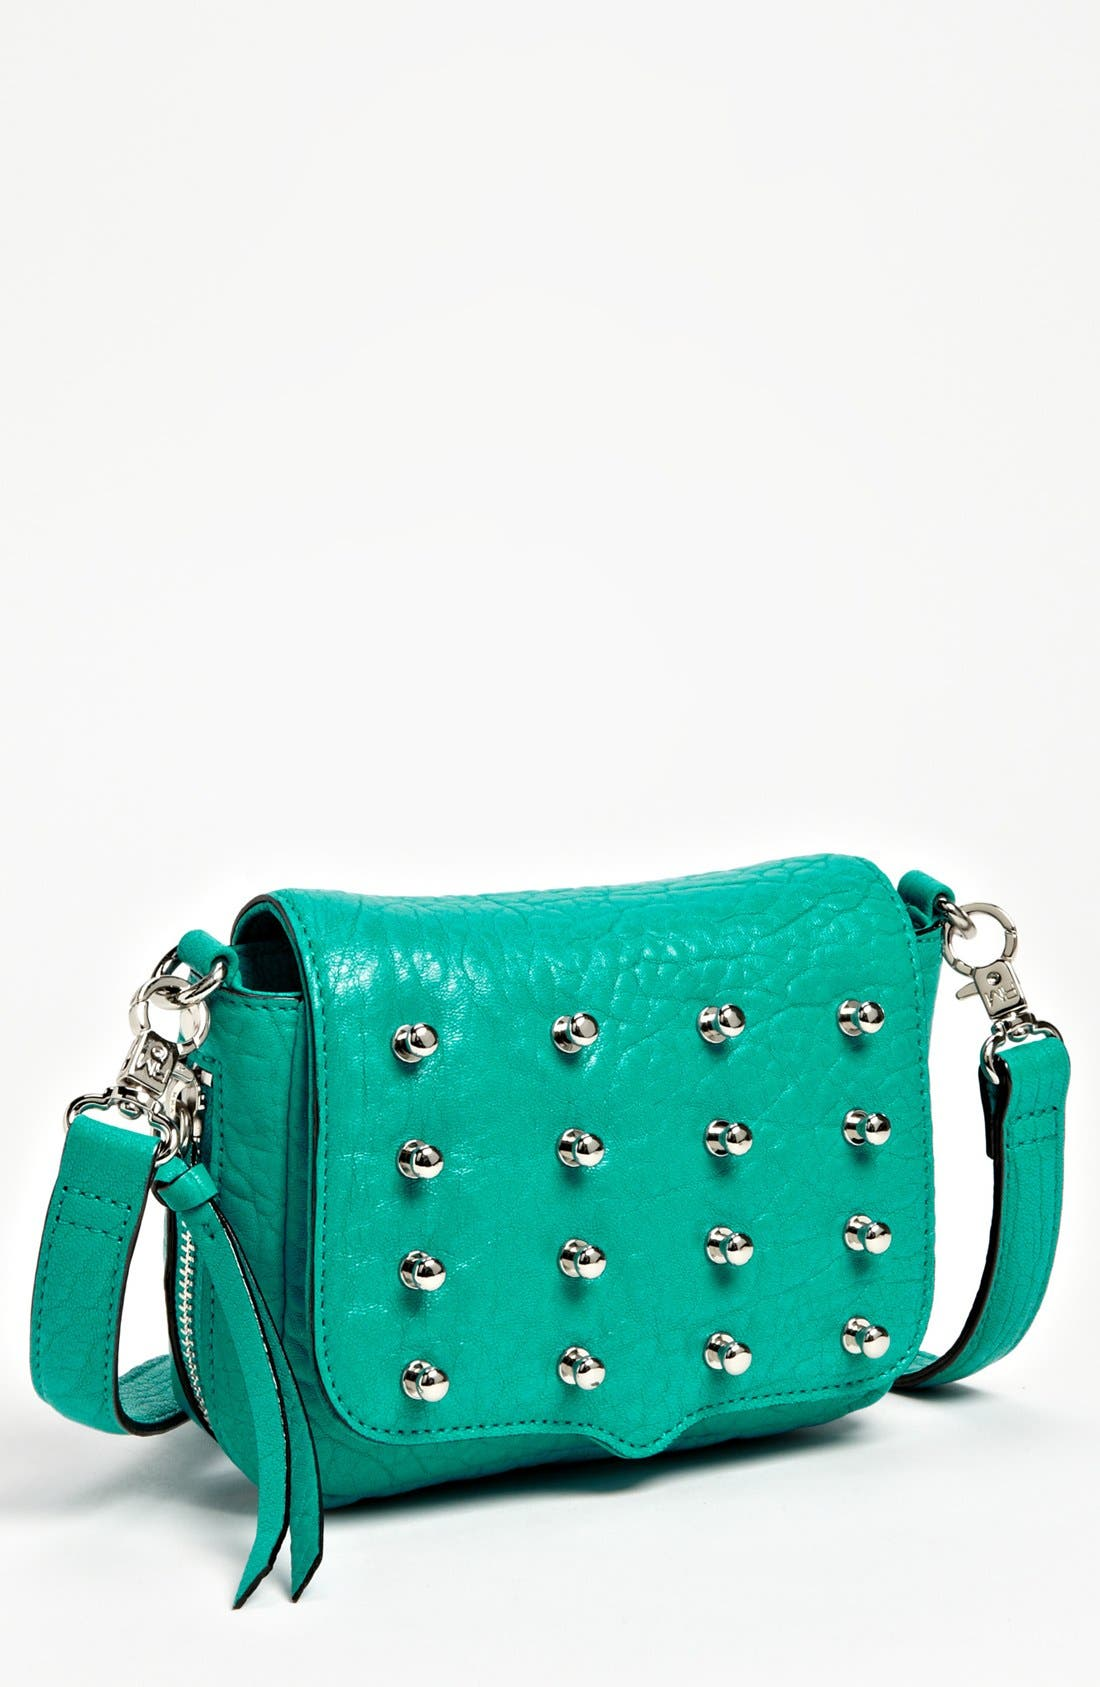 Alternate Image 1 Selected - Rebecca Minkoff 'Connor - Mini' Crossbody Bag